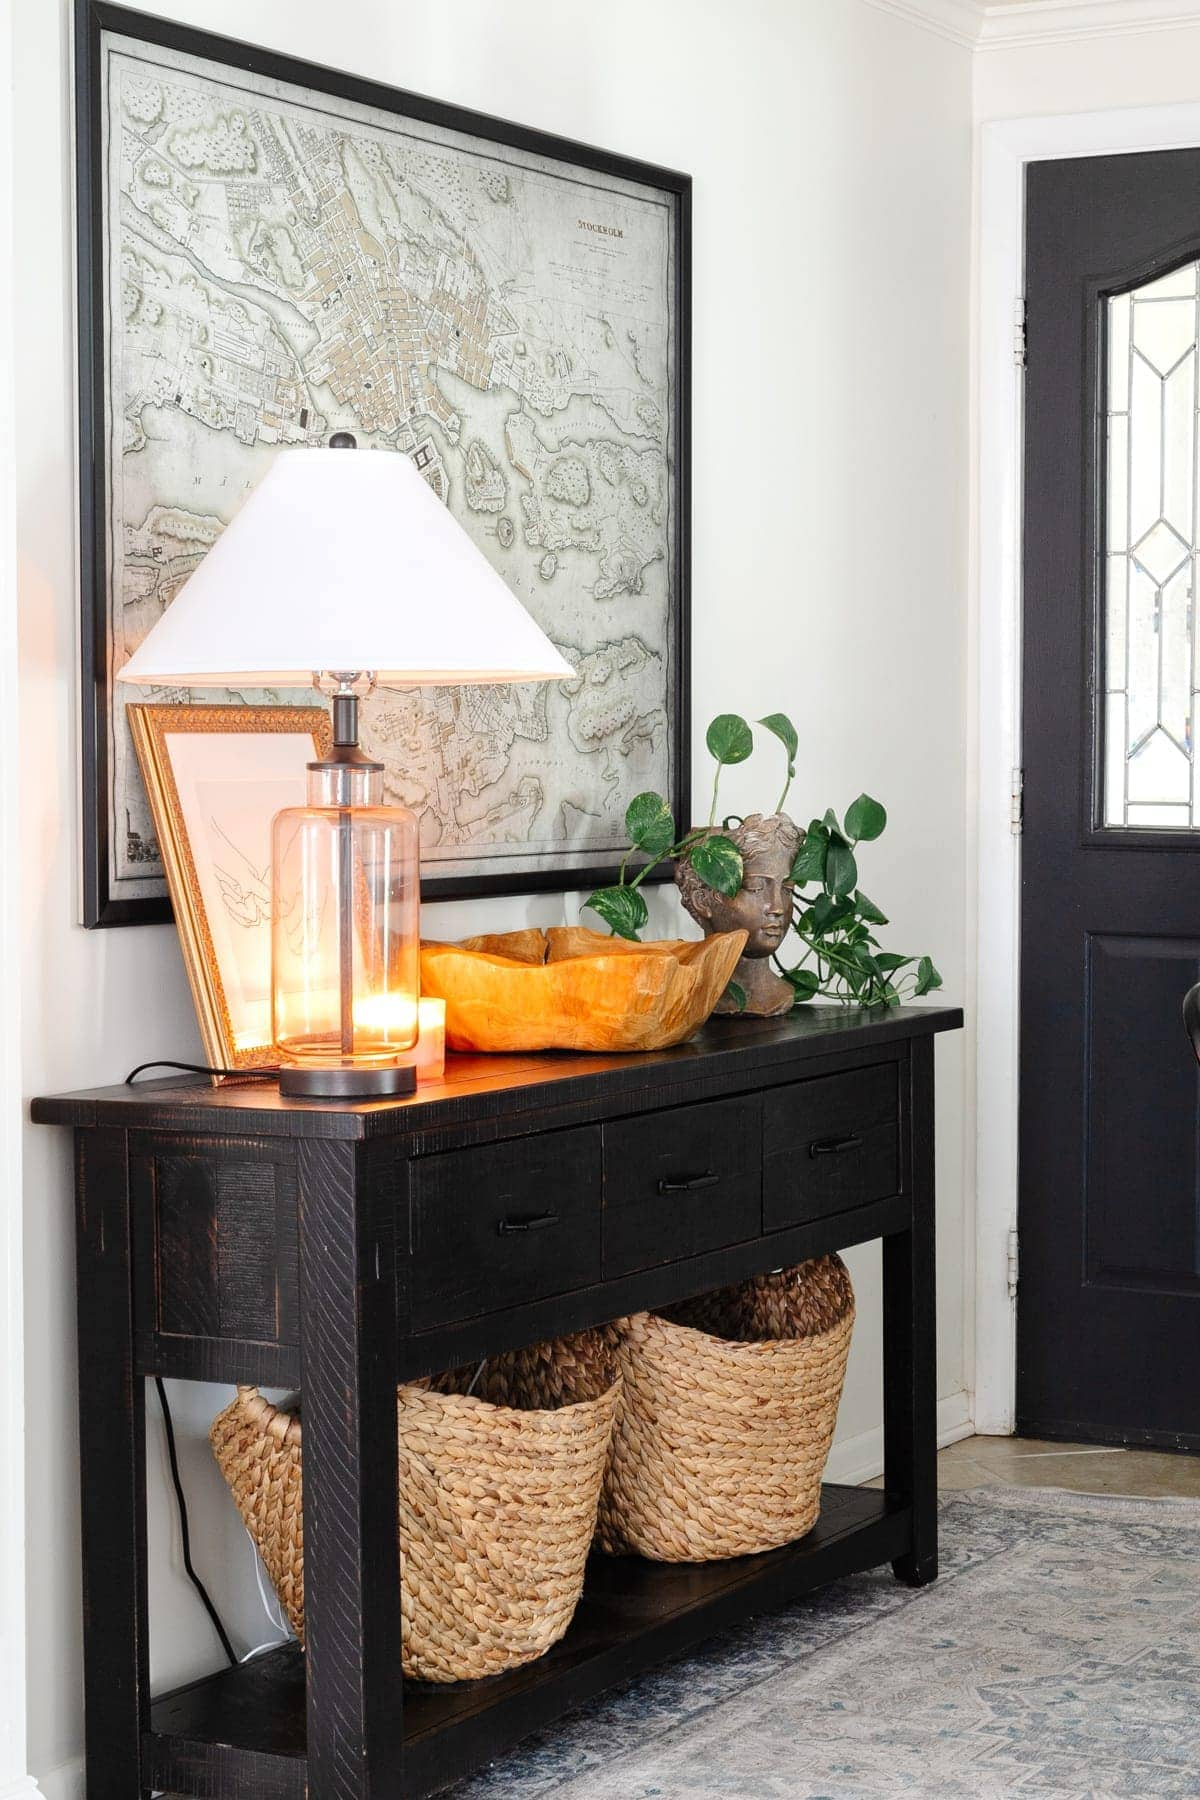 black entryway table with baskets, bust planter, lamp, and map art. White walls and black door